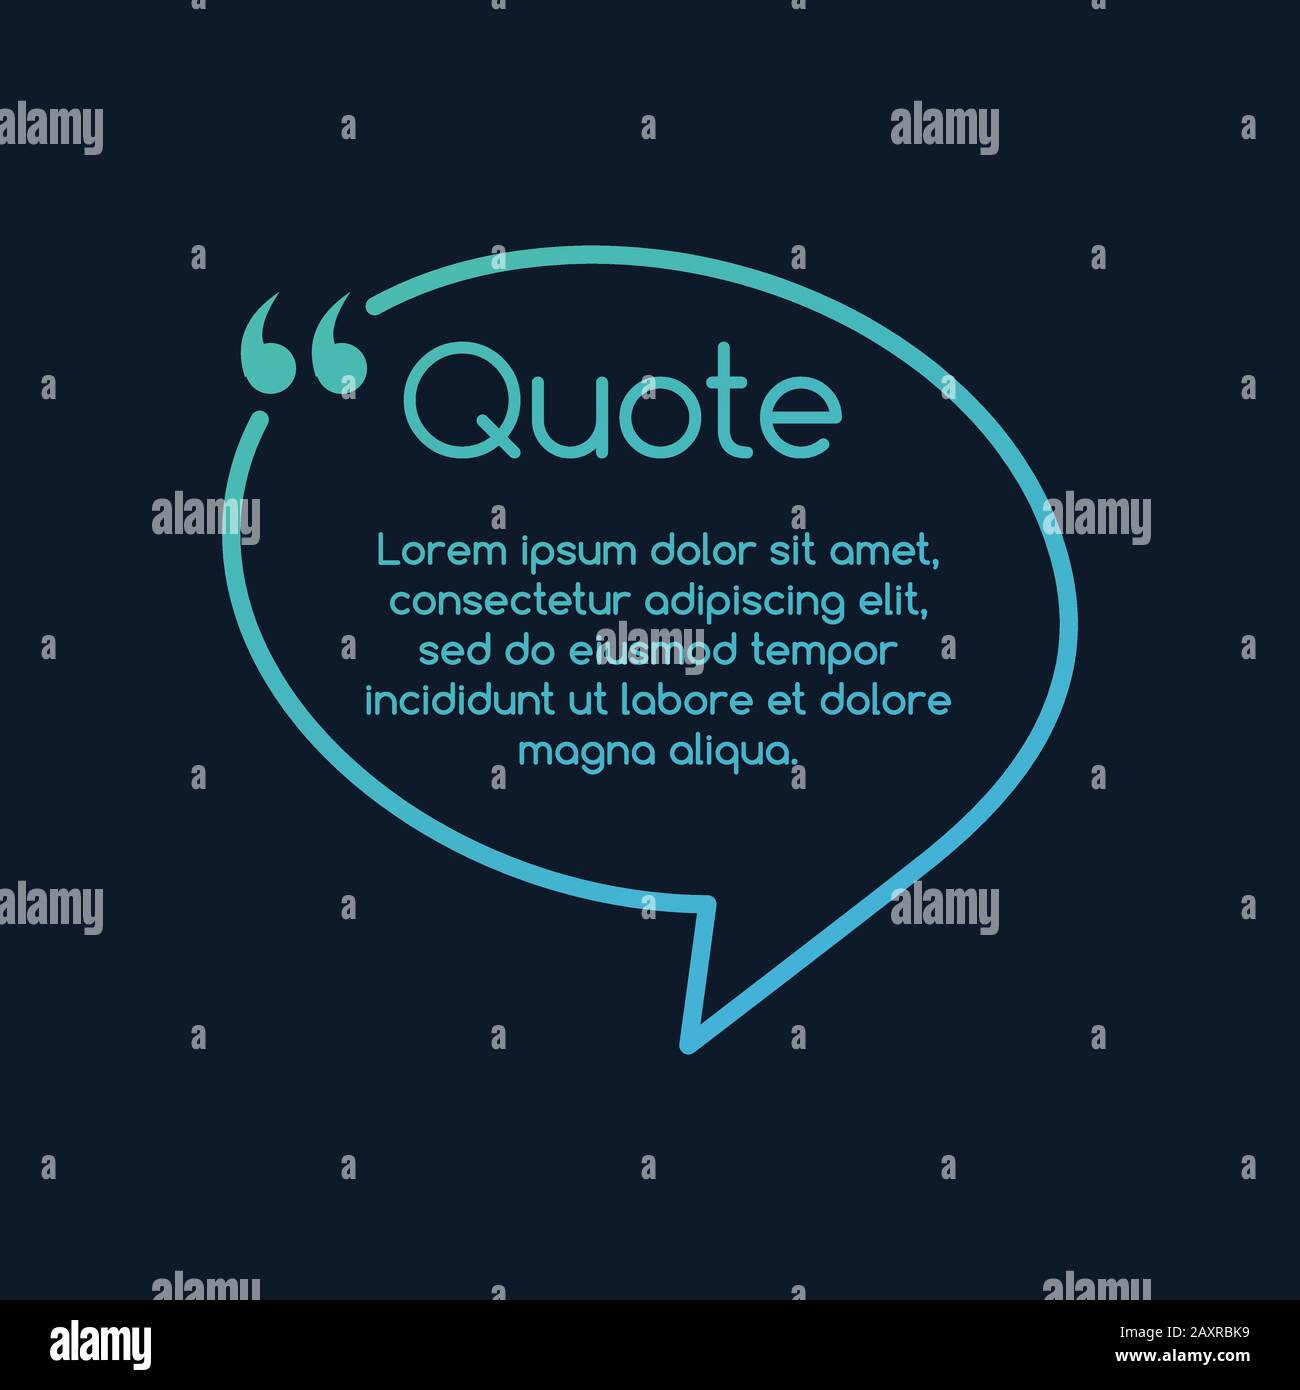 Innovative Vector Quotation Template In Quotes Creative Vector Banner Illustration With A Quote In A Frame With Quotes Vector Illustration Isolated Stock Vector Image Art Alamy,Room Wallpaper 3d Wallpaper Design With Price